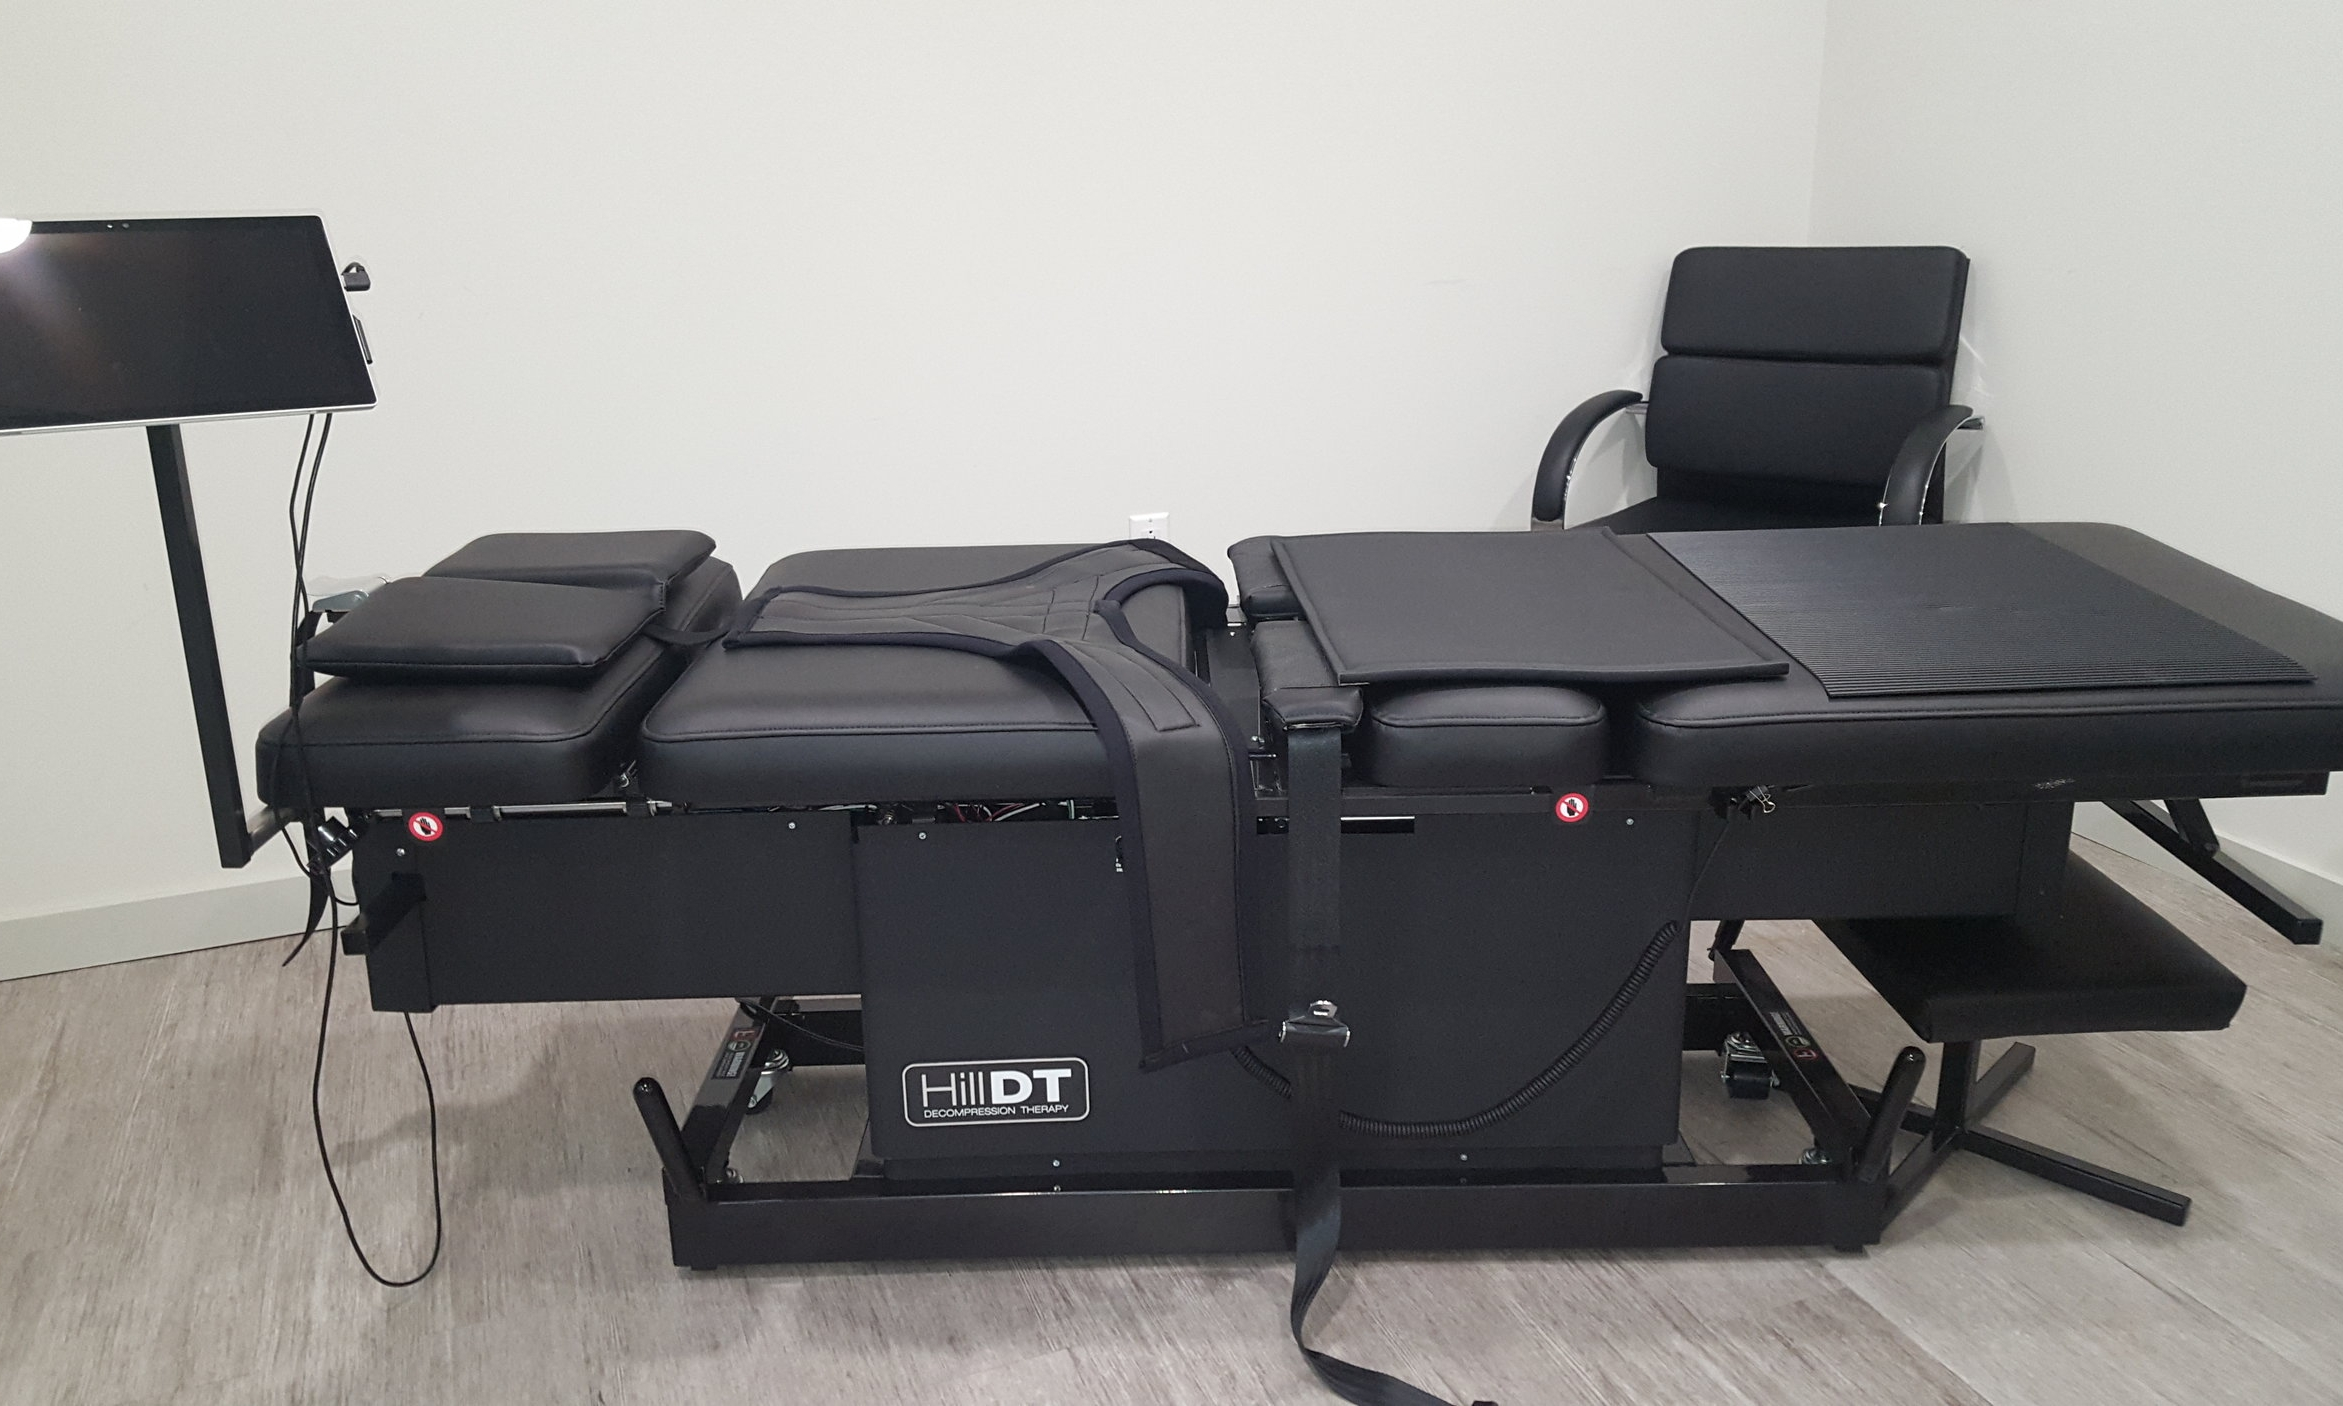 Hill DT Spinal Decompression Table